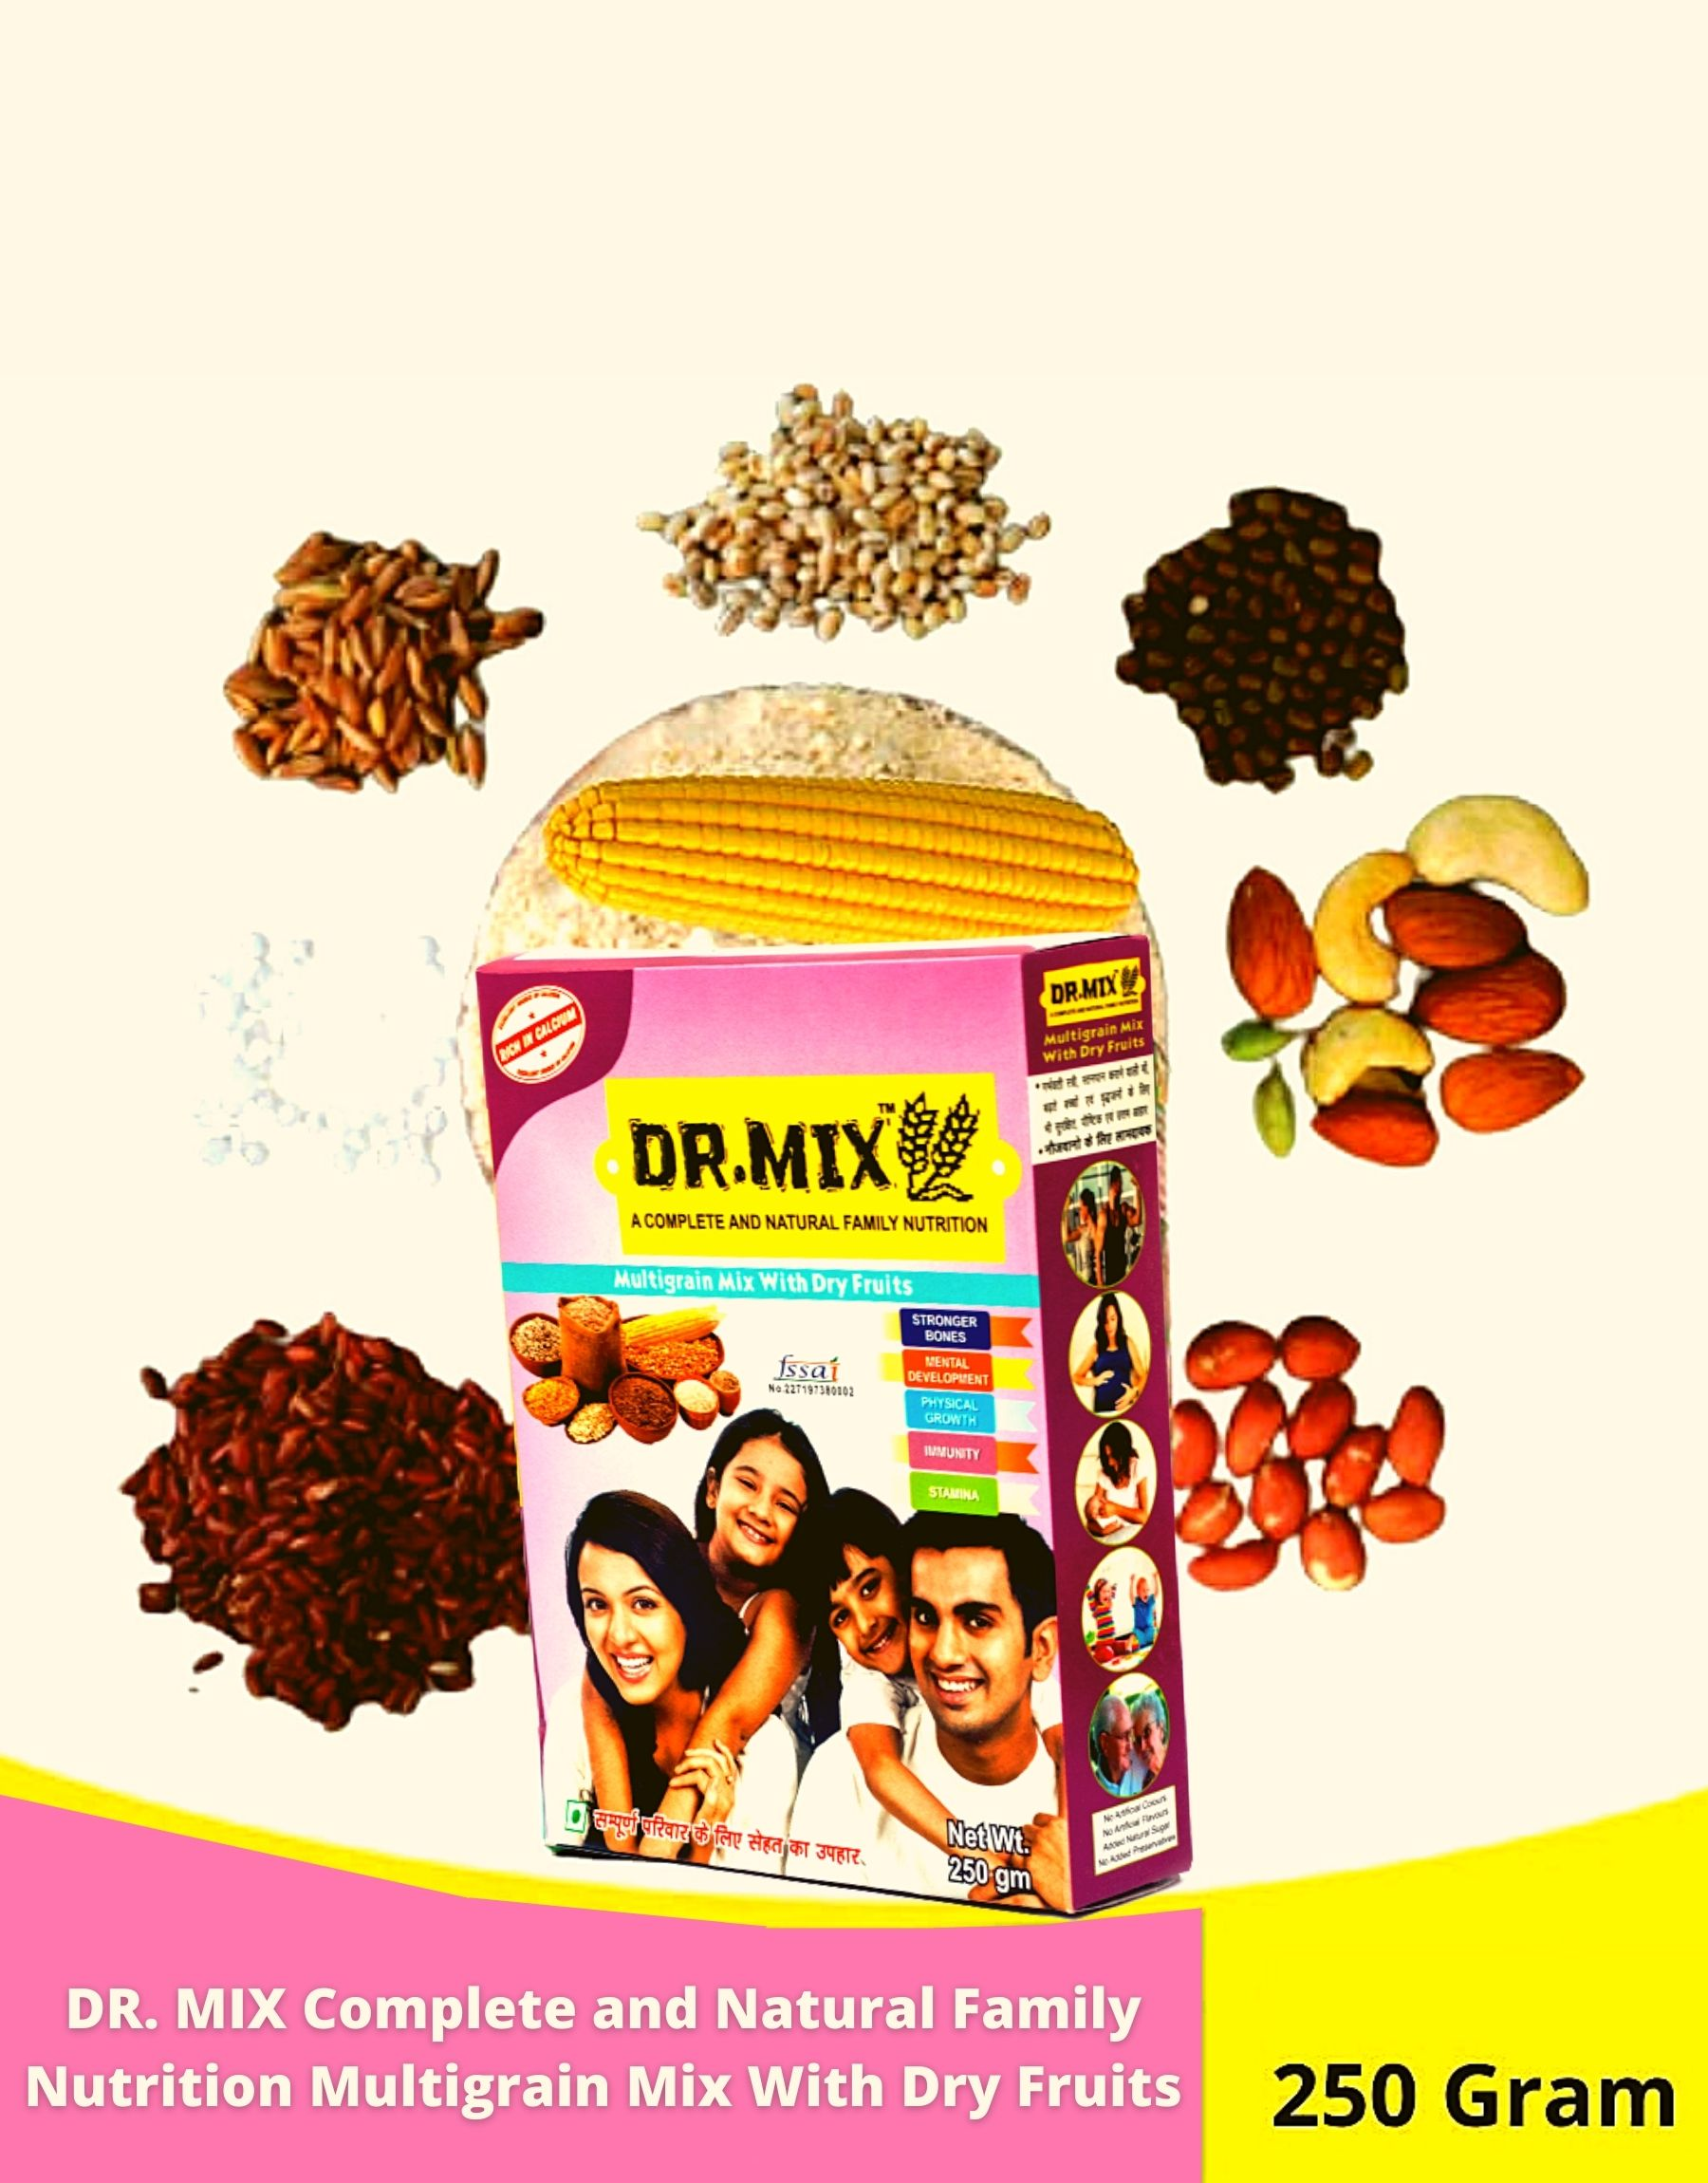 Dr. Mix Multigrain Mix with Dry Fruits